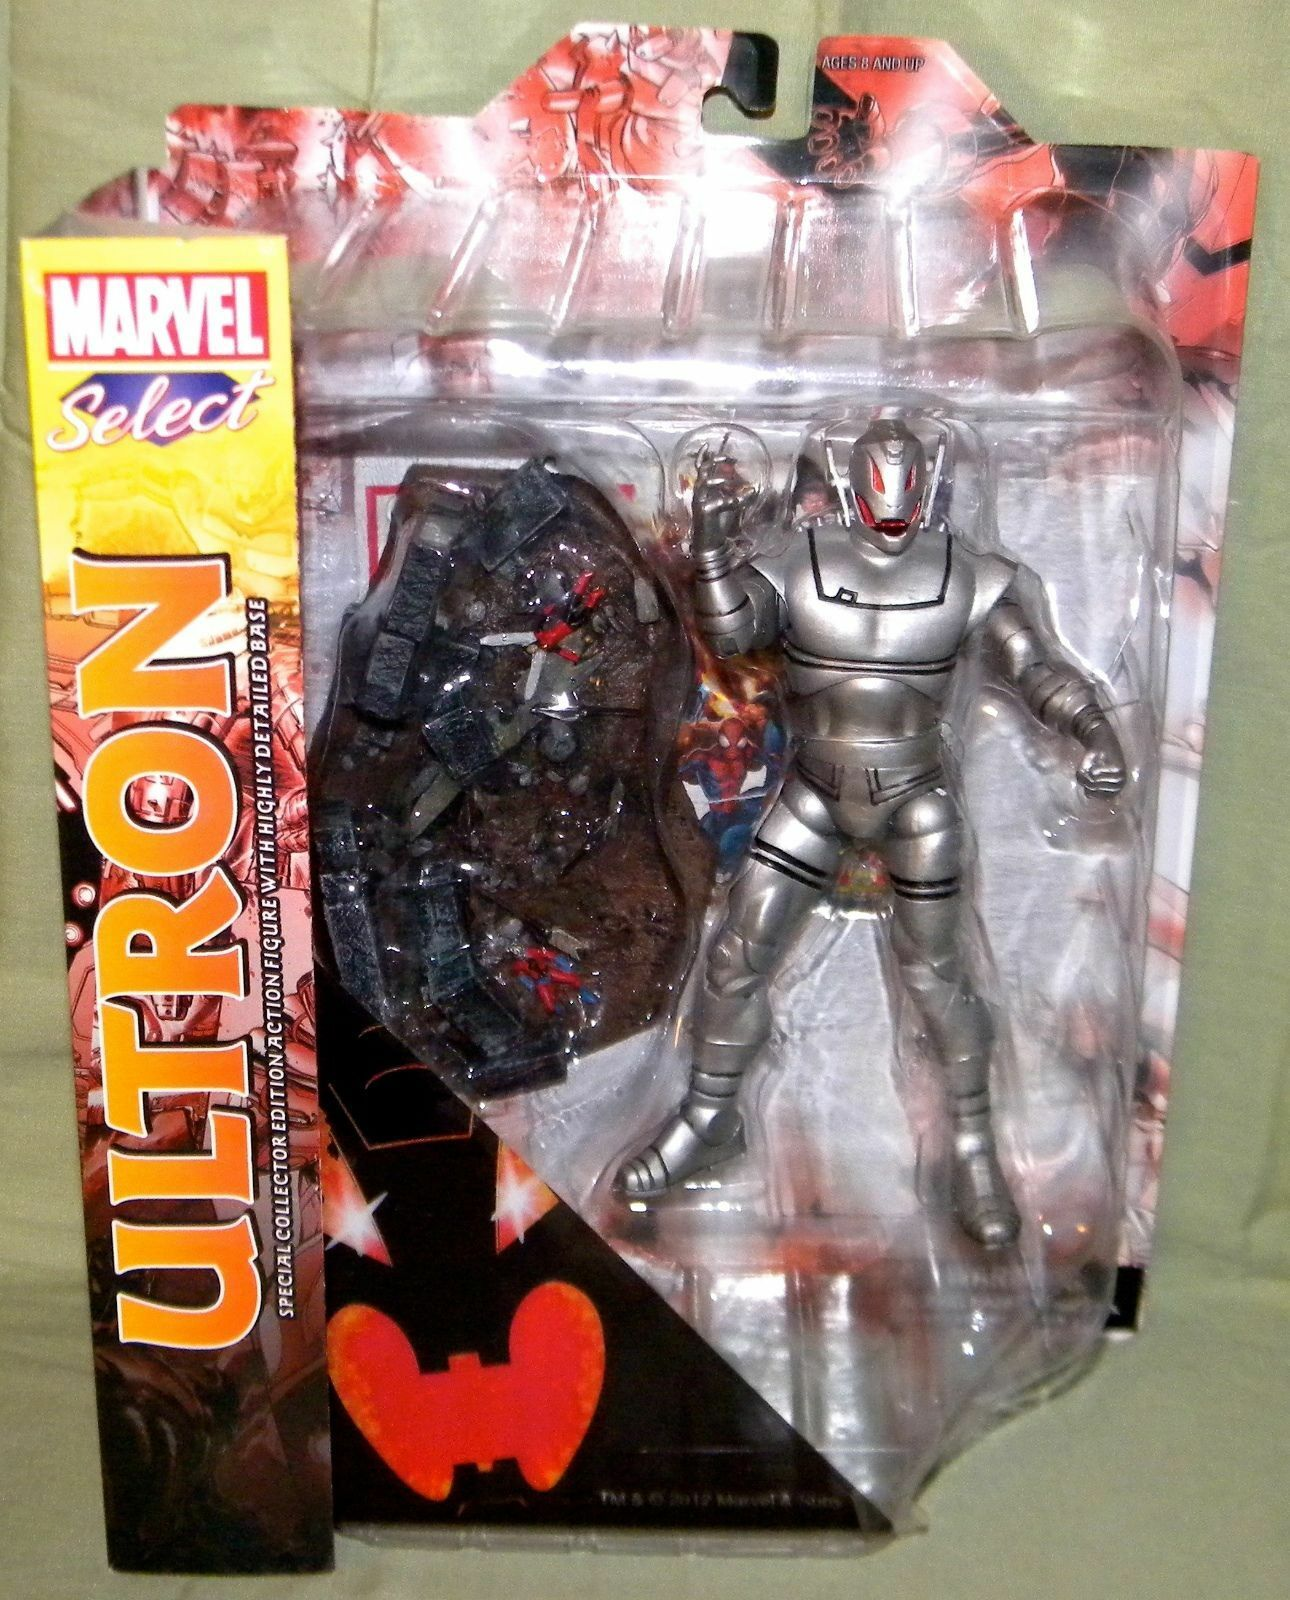 Marvel Select - Avengers Age Of Ultron - Action Figure Diamond Select - NEW MINT